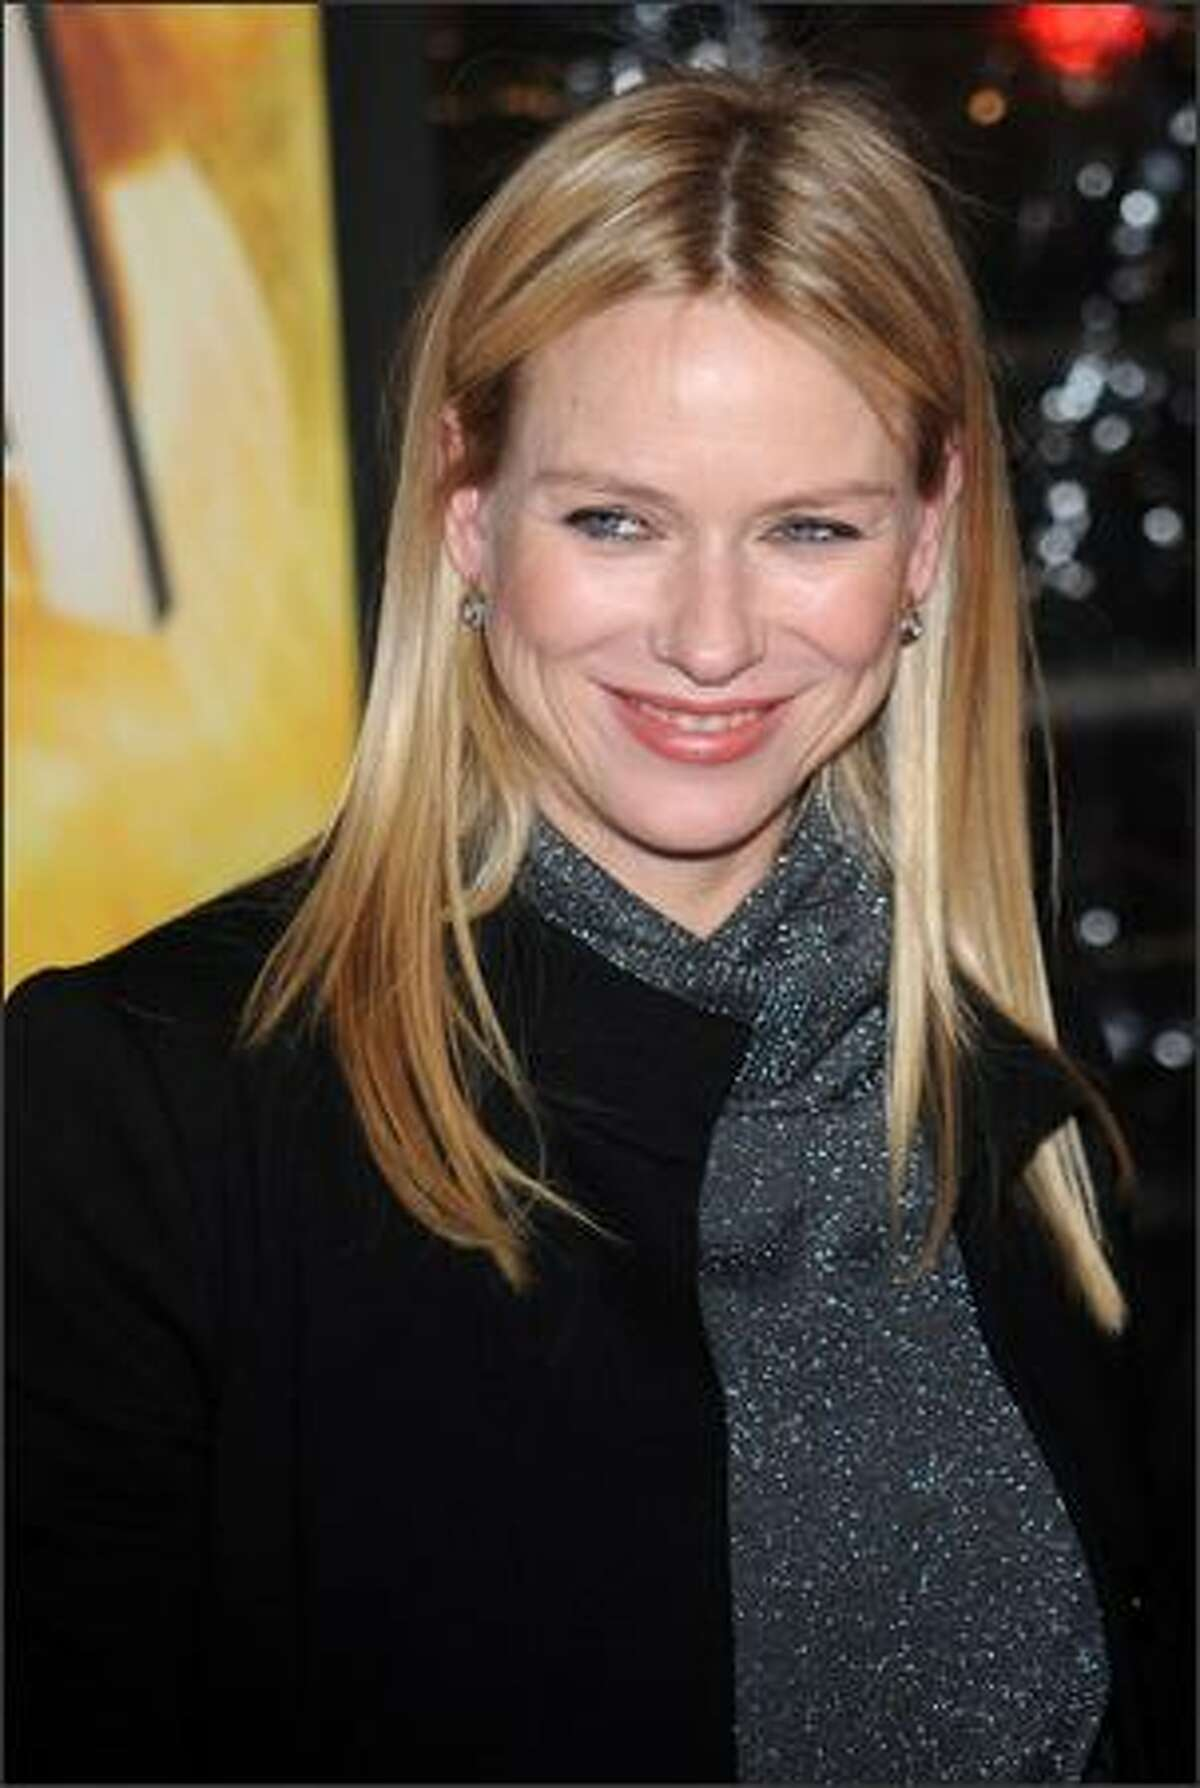 Naomi Watts attends the New York premiere of